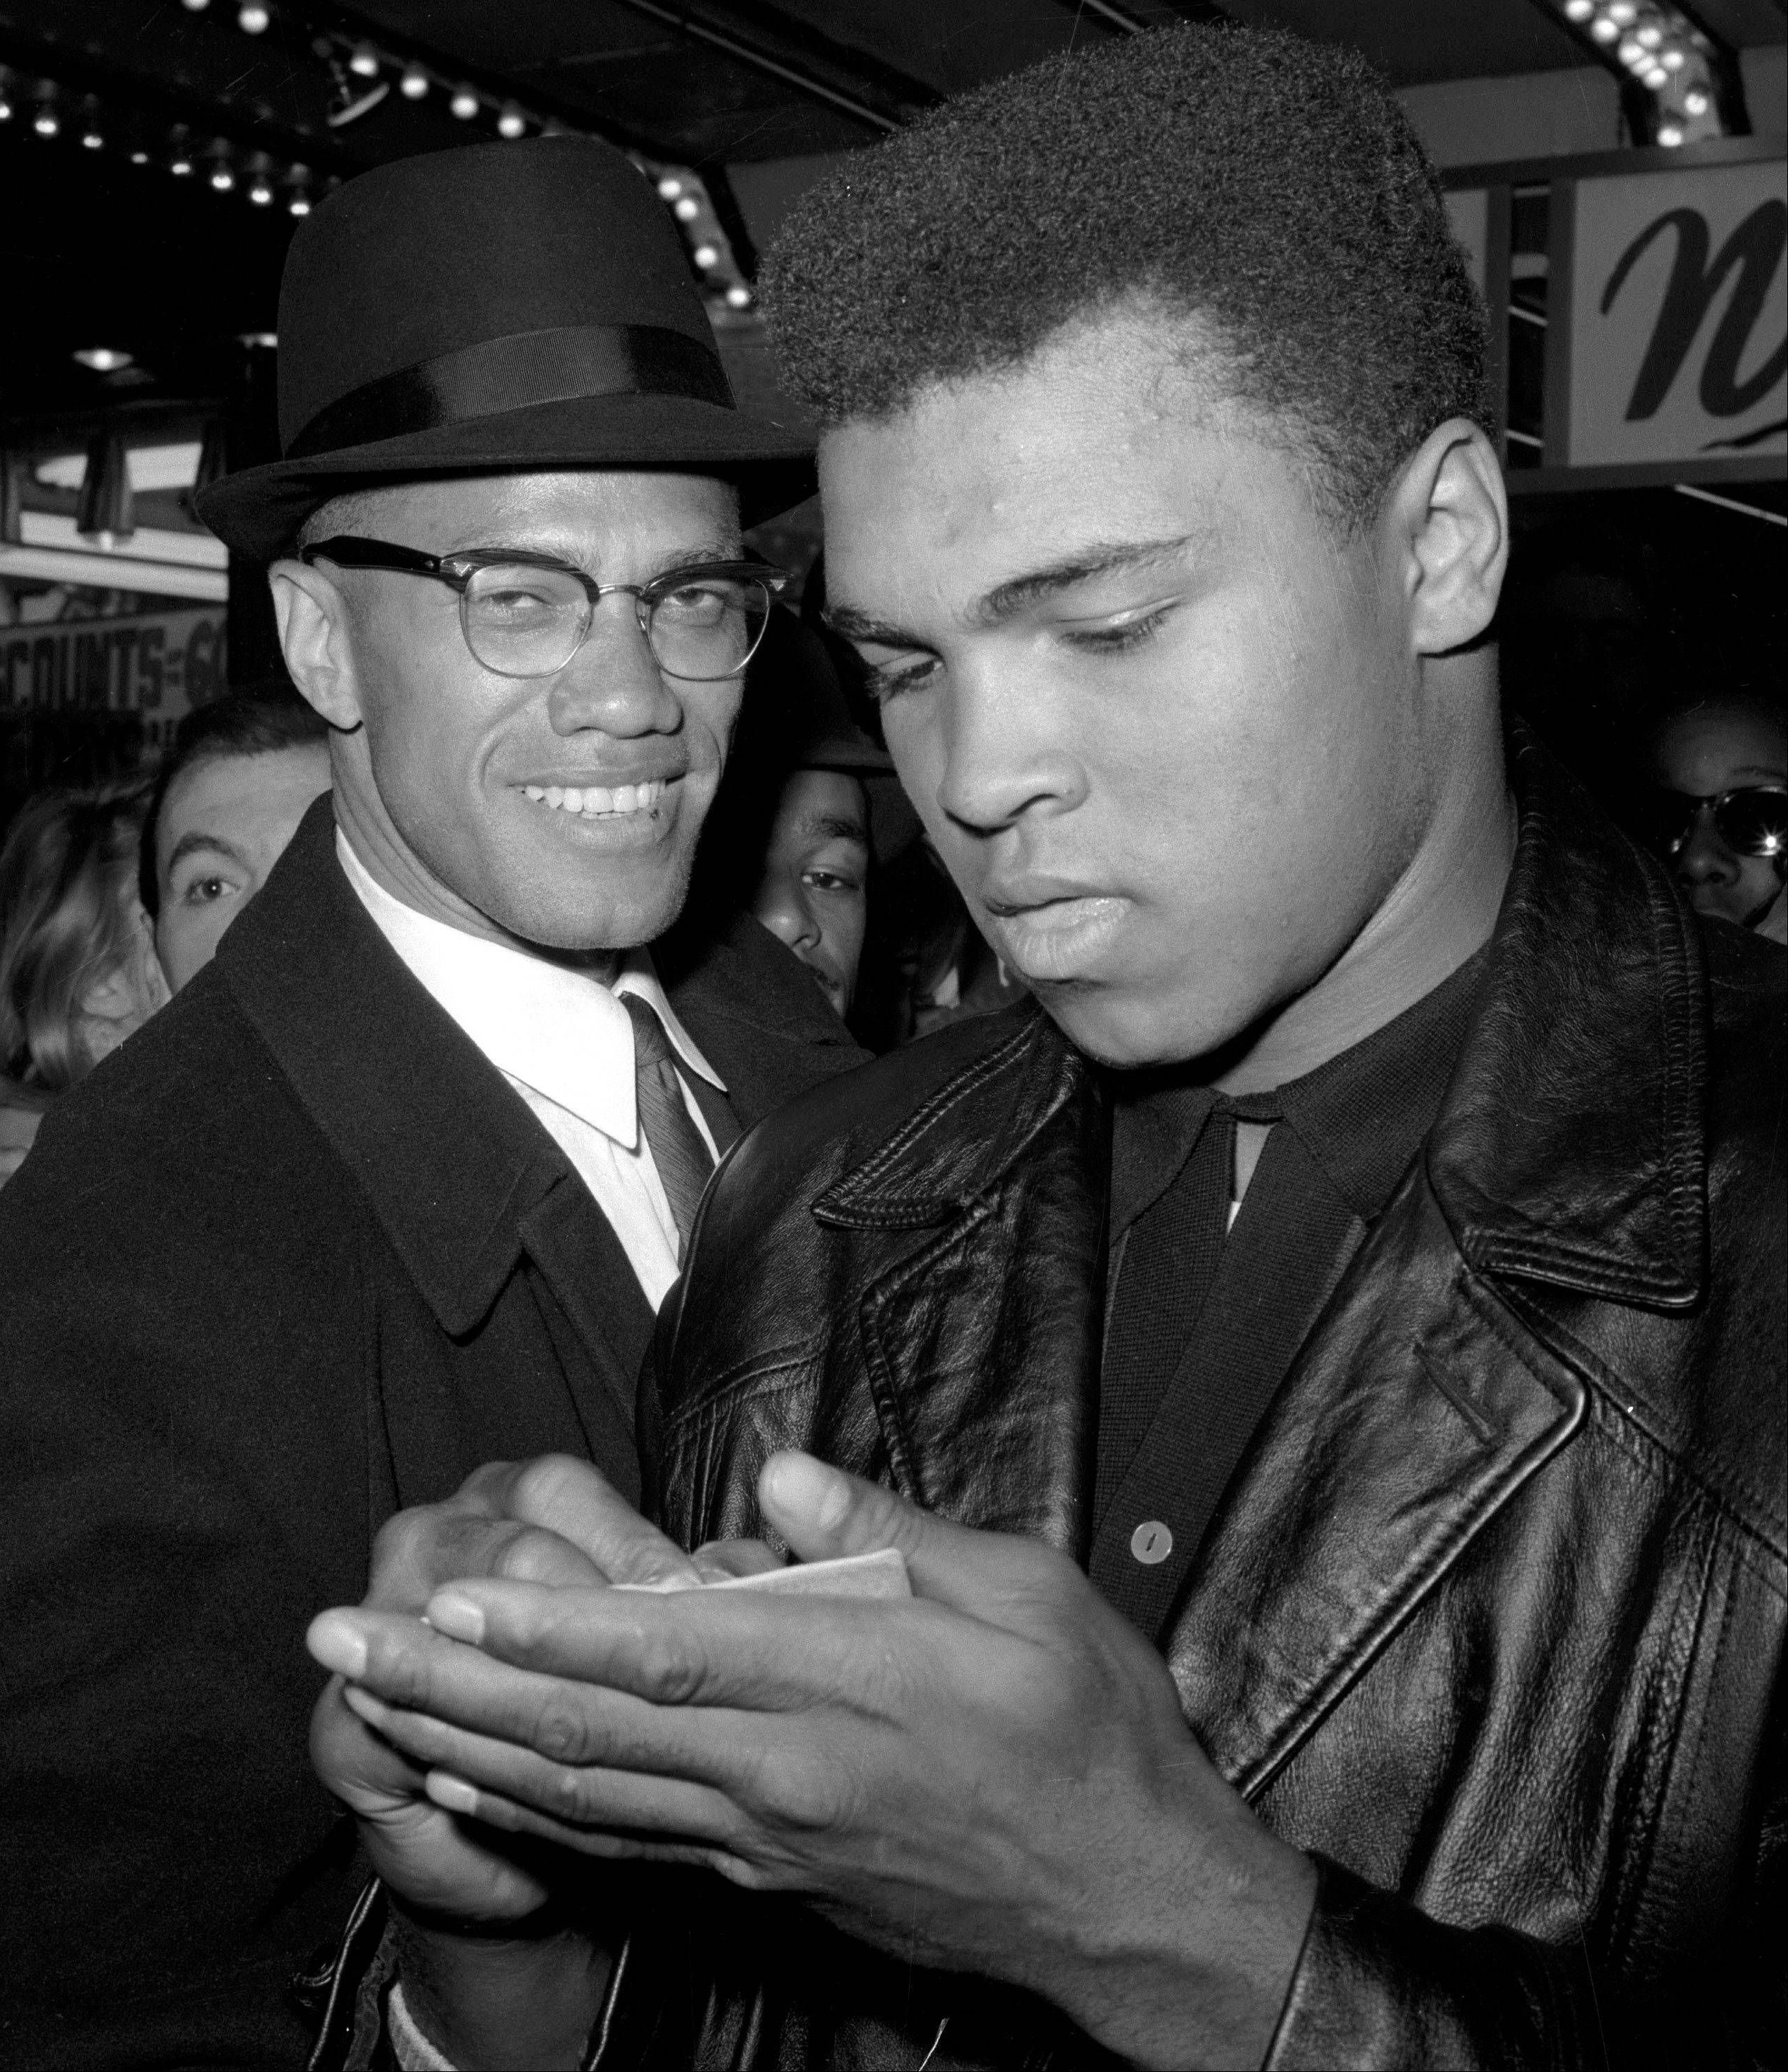 Heavyweight boxing champion Muhammad Ali, right, is shown with black Muslim leader Malcolm X in New York, after viewing the screening of a film about Ali's title fight with Sonny Liston.